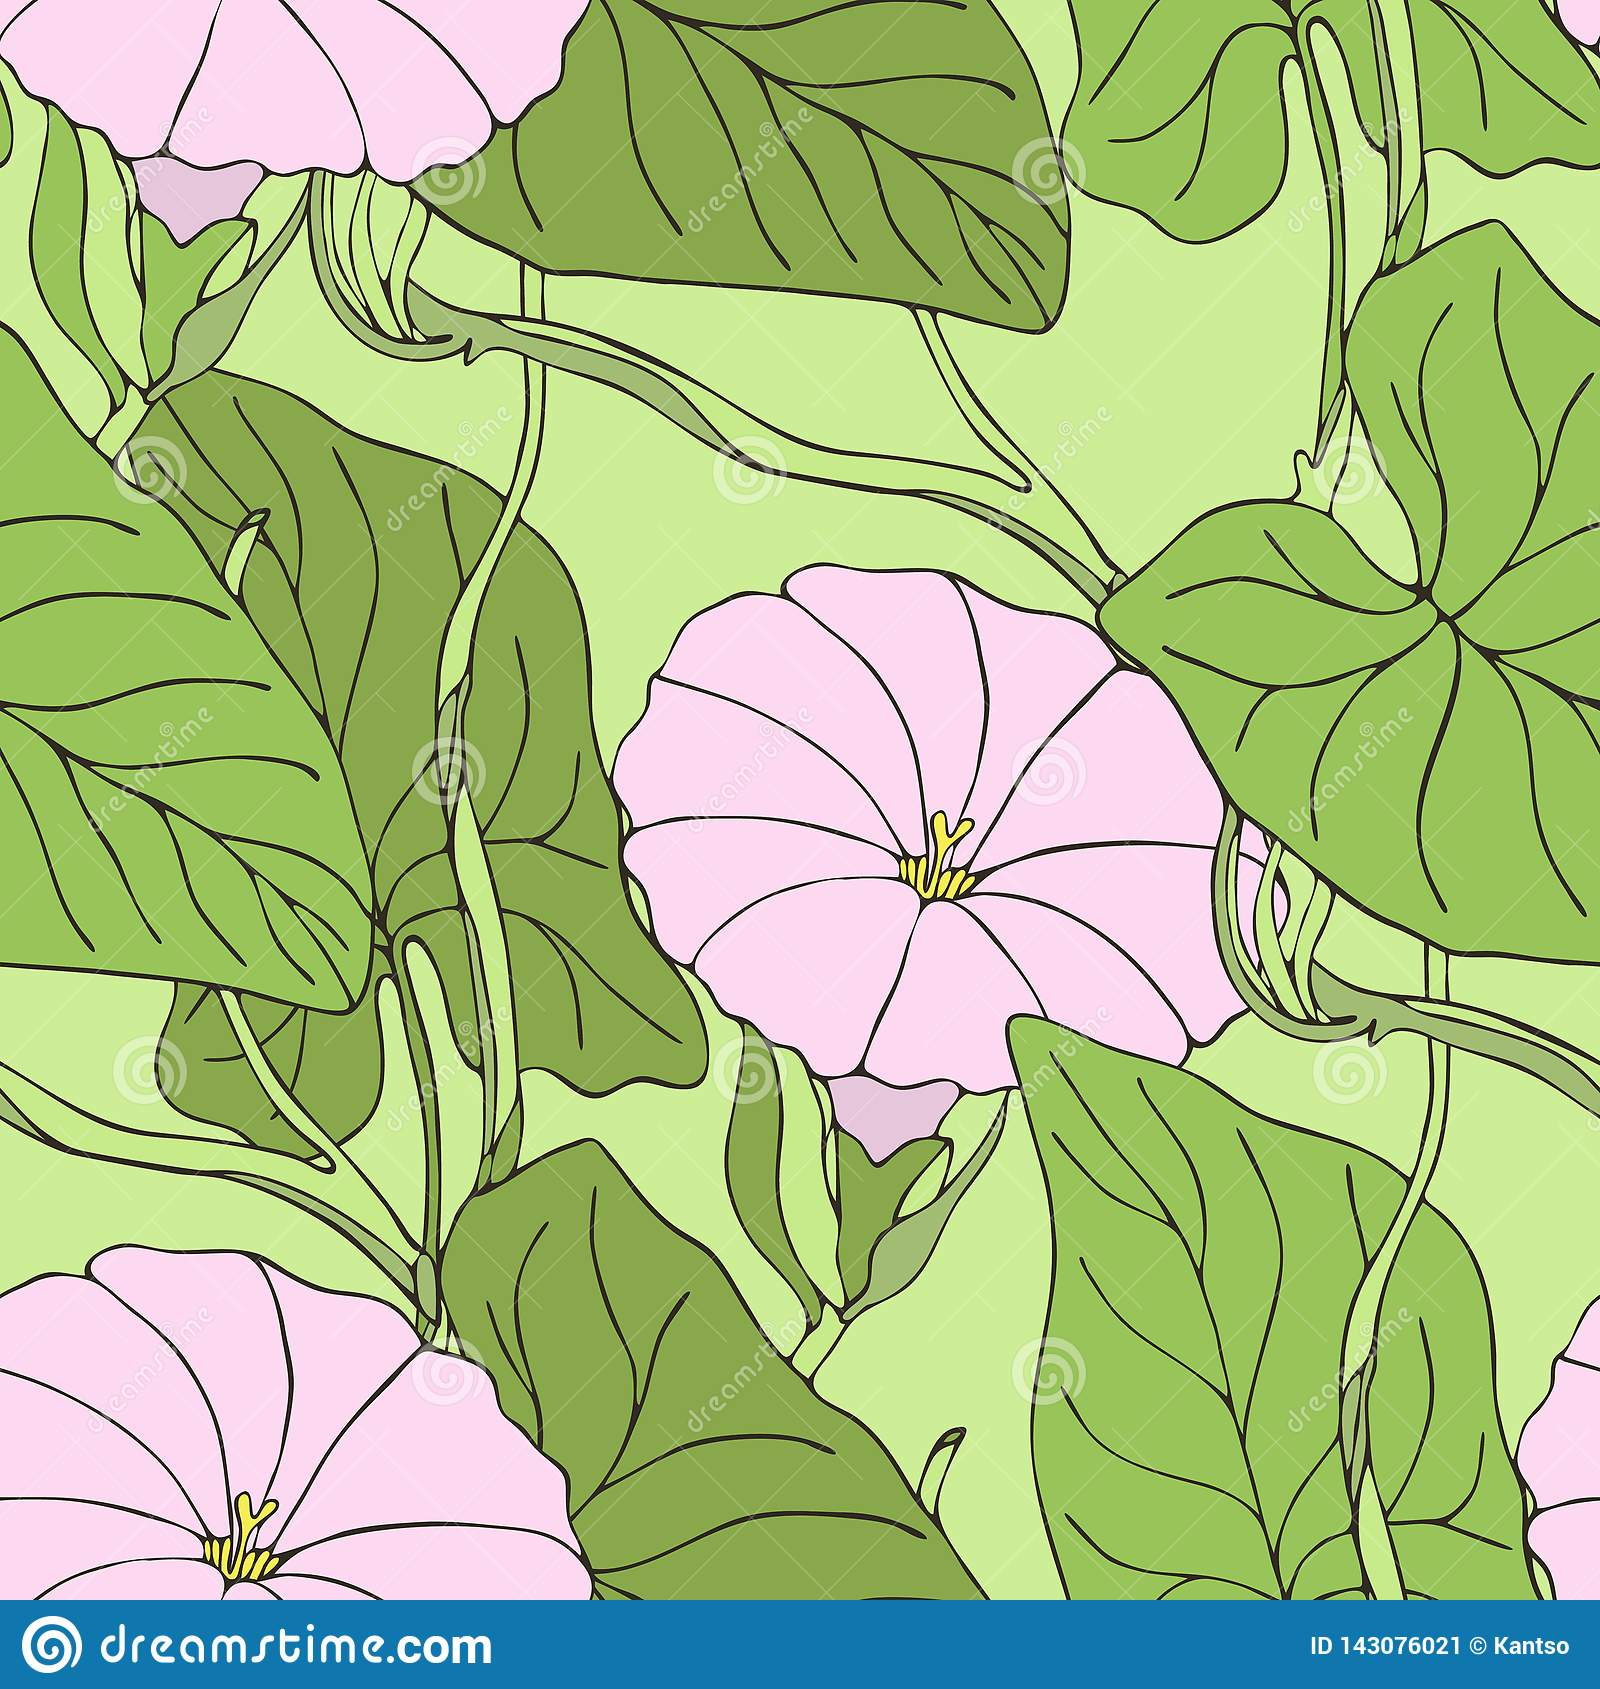 Fall Maple Leaf Tiled Wallpaper Retro Seamless Pattern With Abstract Doodle Leaves Cartoon